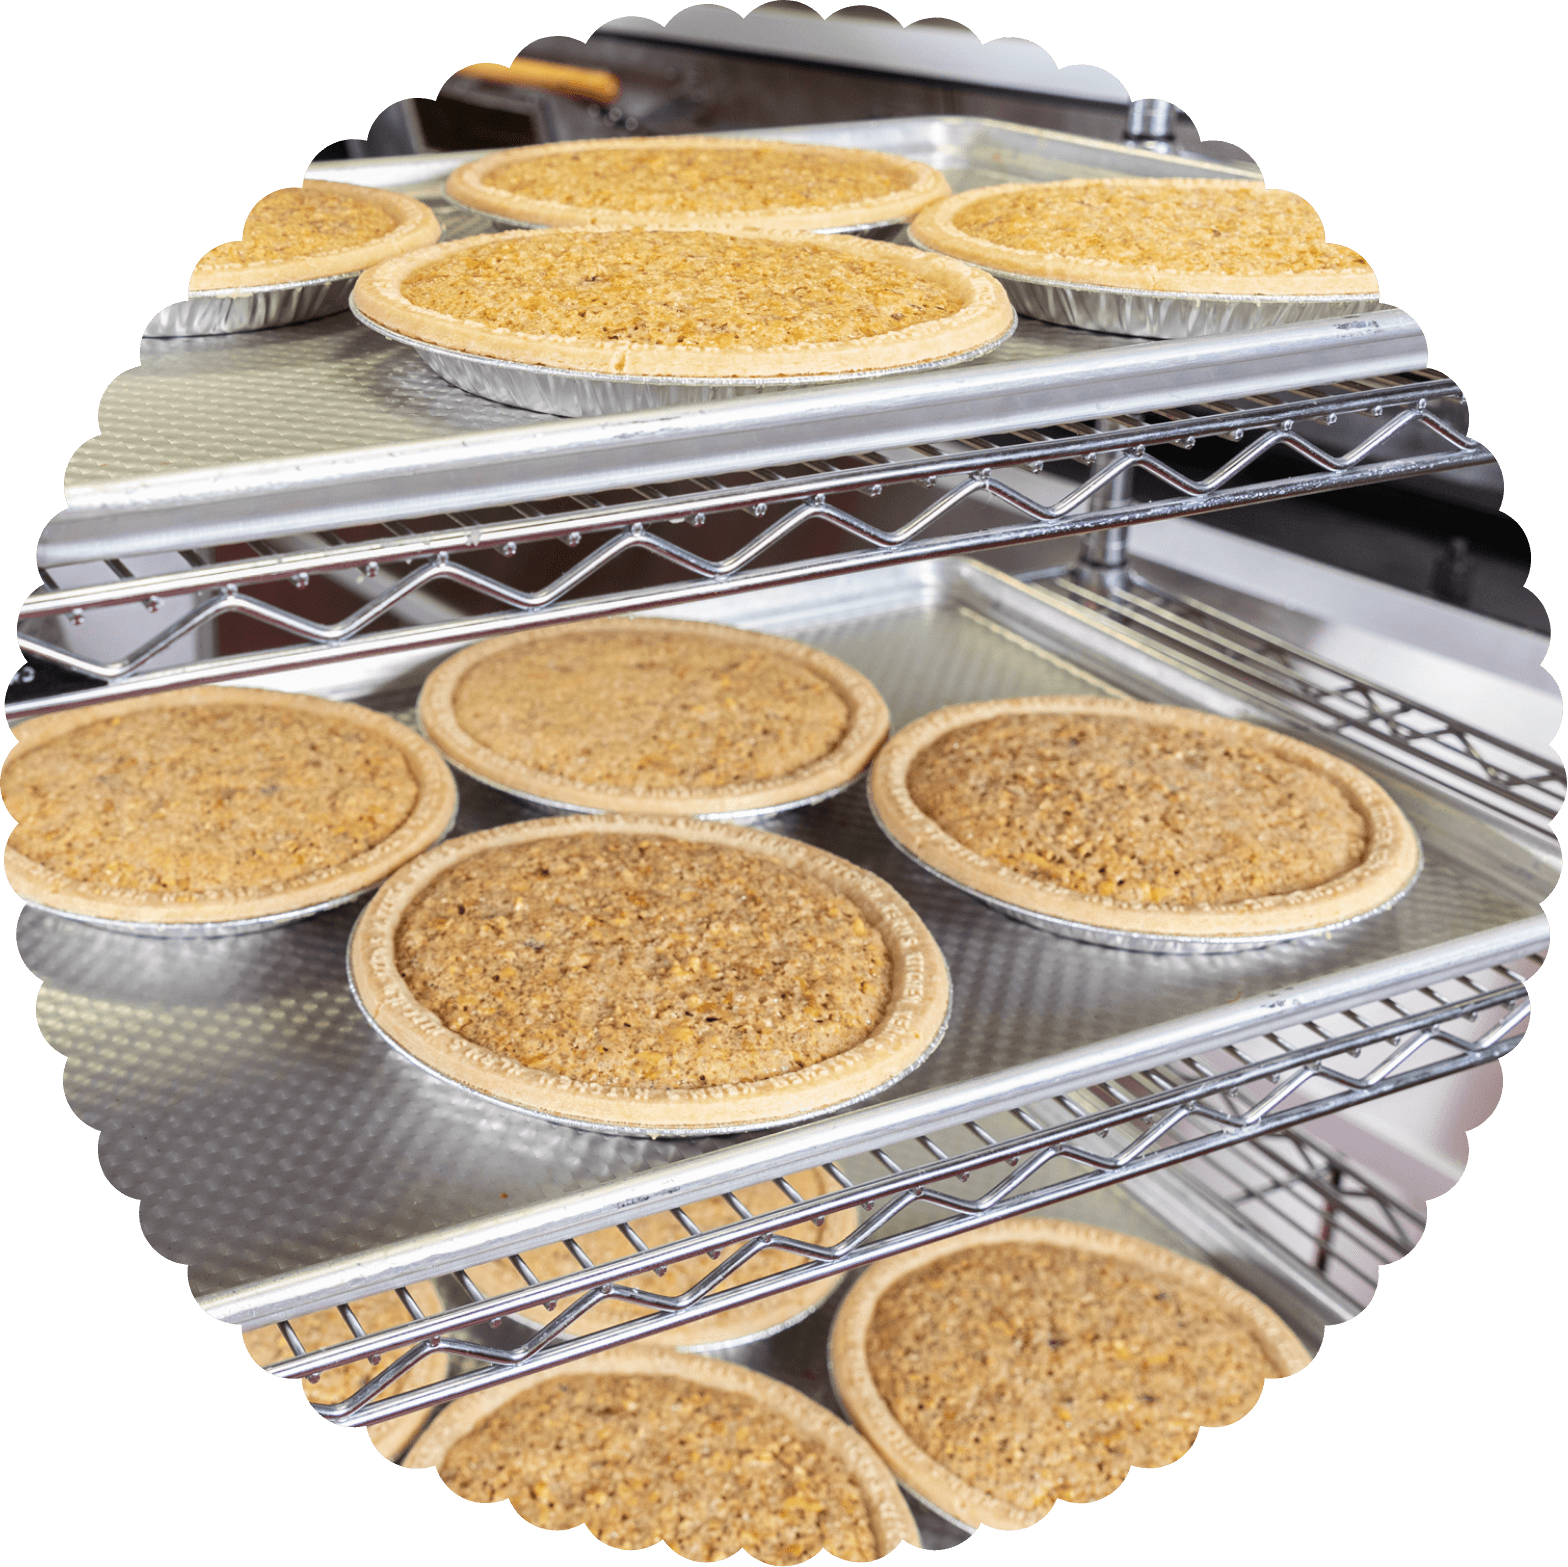 Pies baking on an oven rack